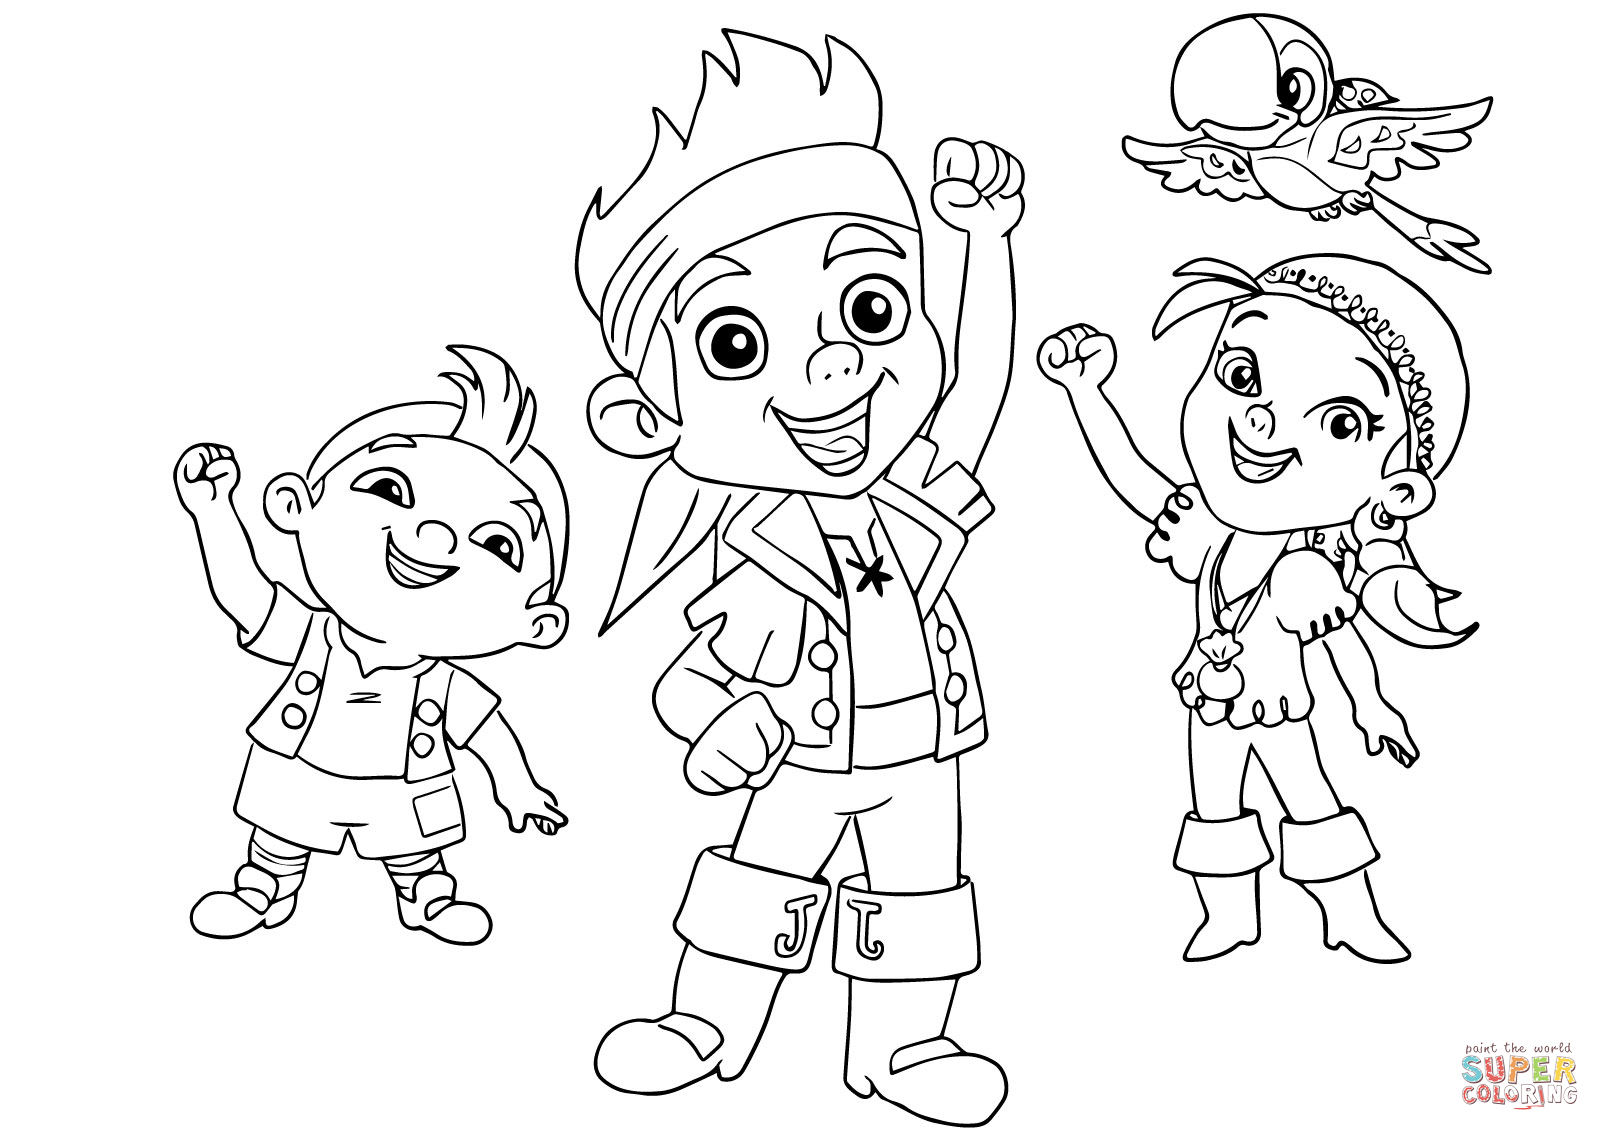 Jake-and-the-neverland-pirates-colouring-page-printable